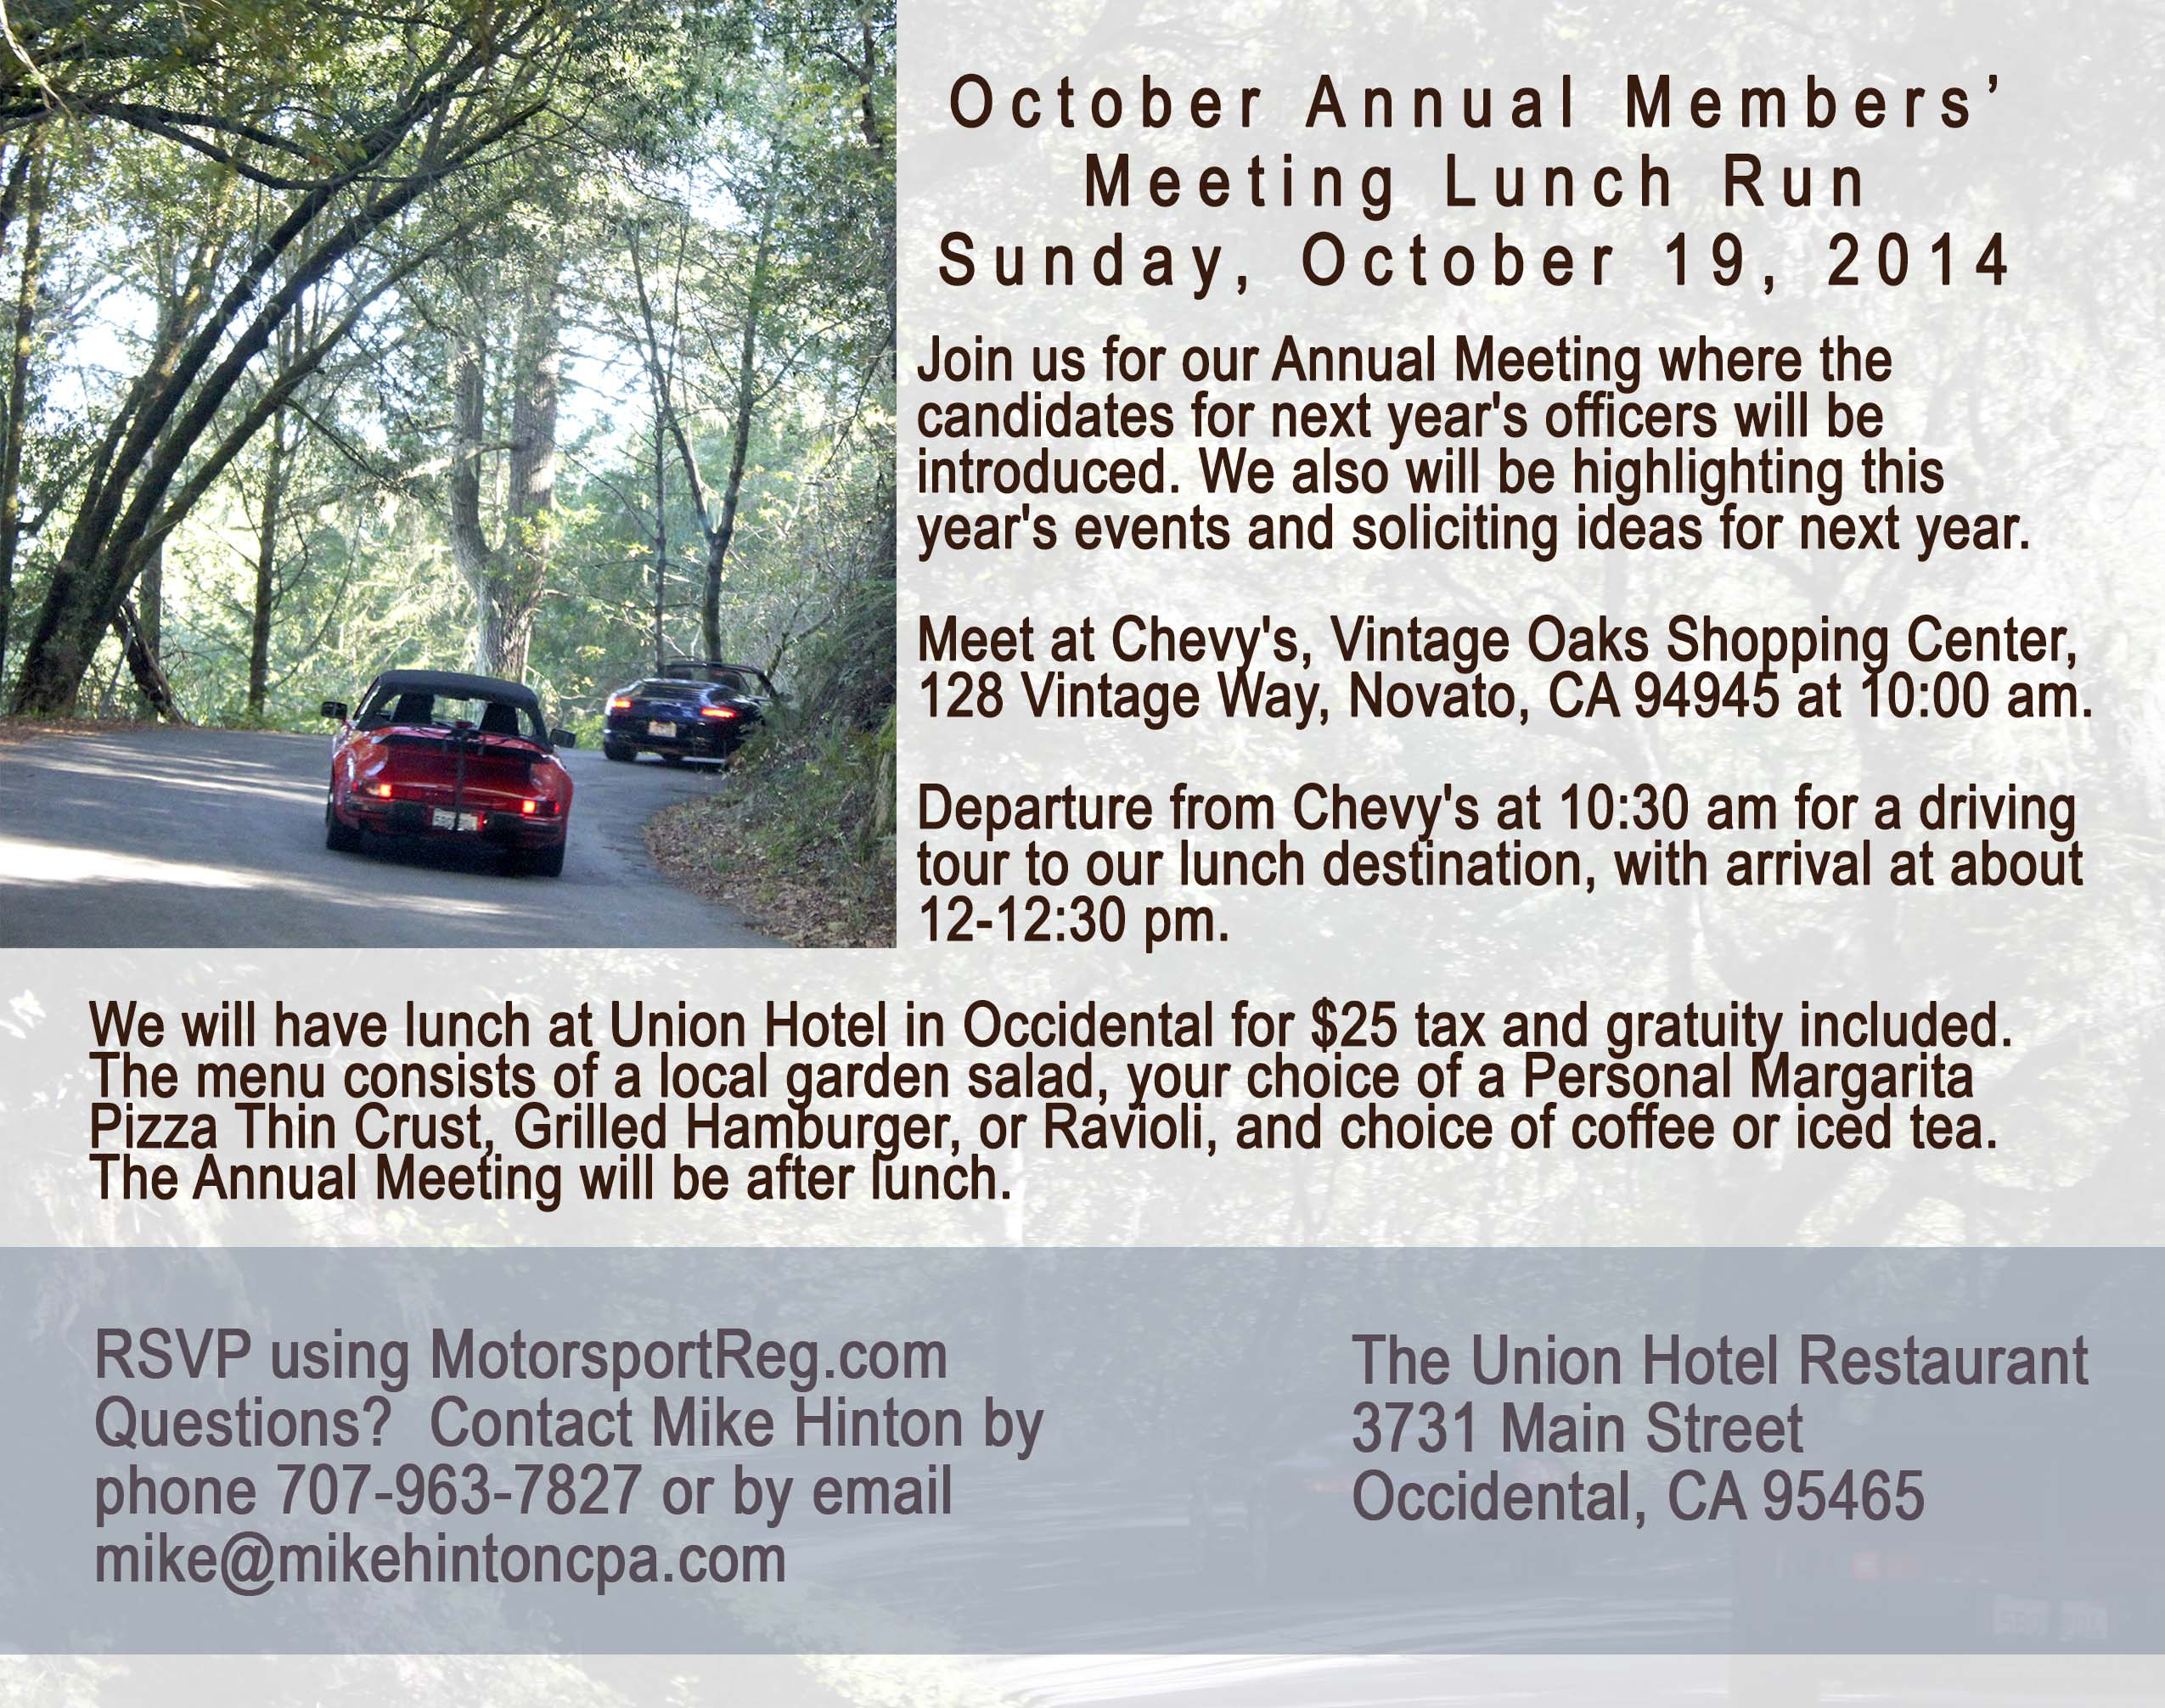 October Annual Meeting